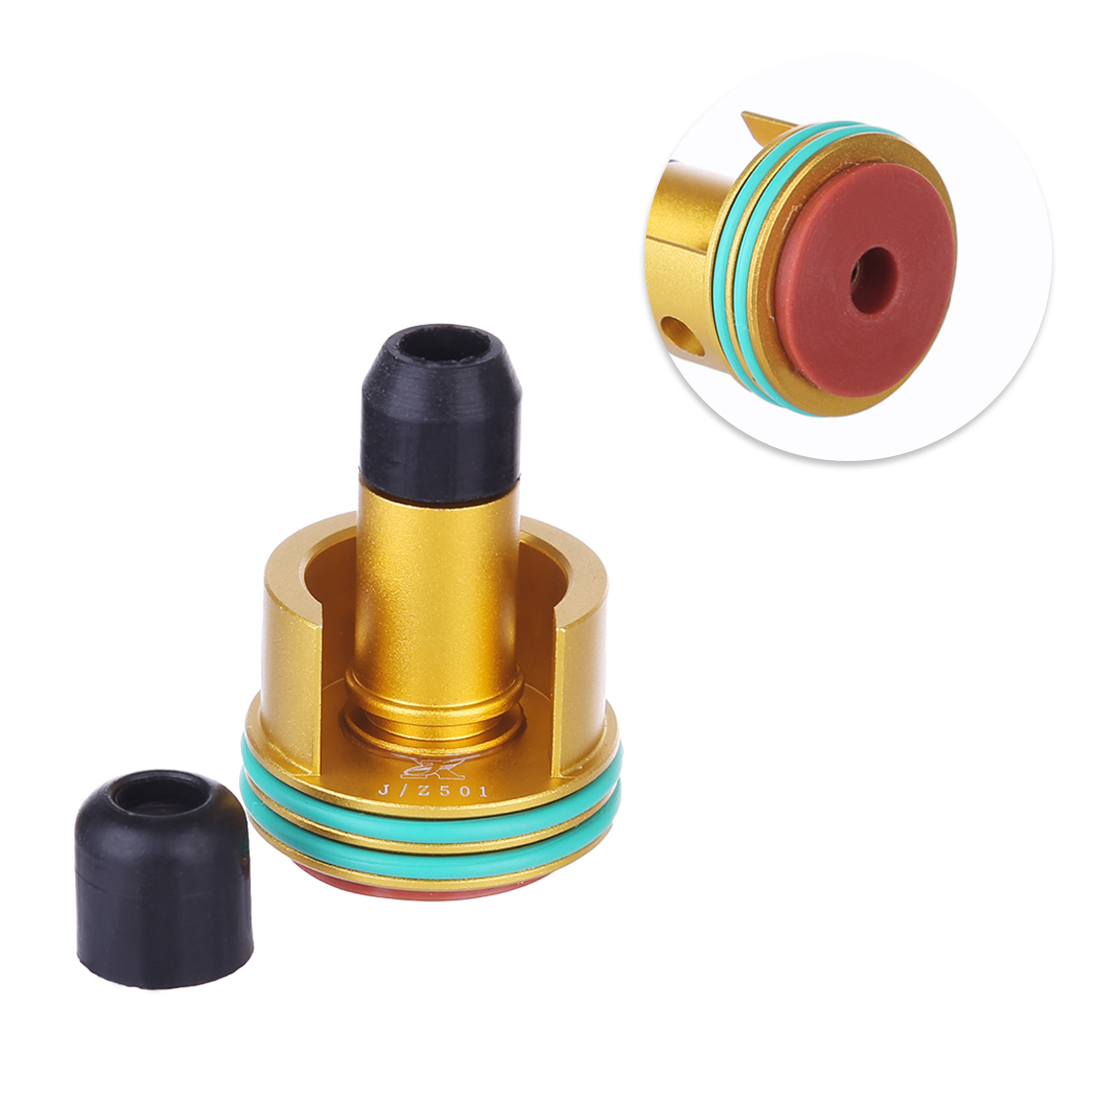 Metal Noise Reduction Air Cylinder Head and Inner O Ring Air Seal Nozzle for Jingji SLR/RX <font><b>AK47</b></font> Water Gel Beads Blaster image